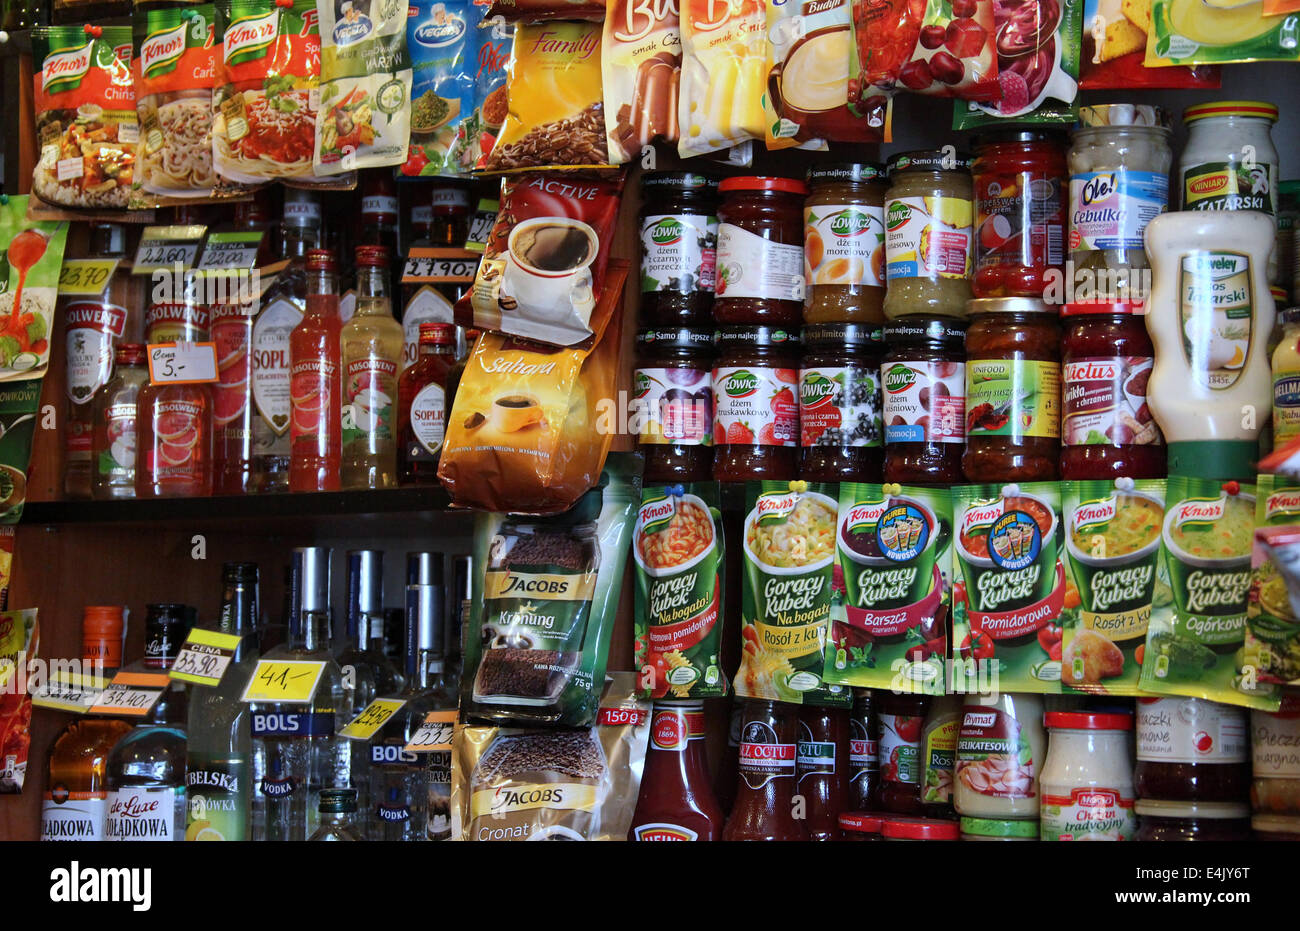 Polish Grocery Store in the Praga District of Warsaw - Stock Image